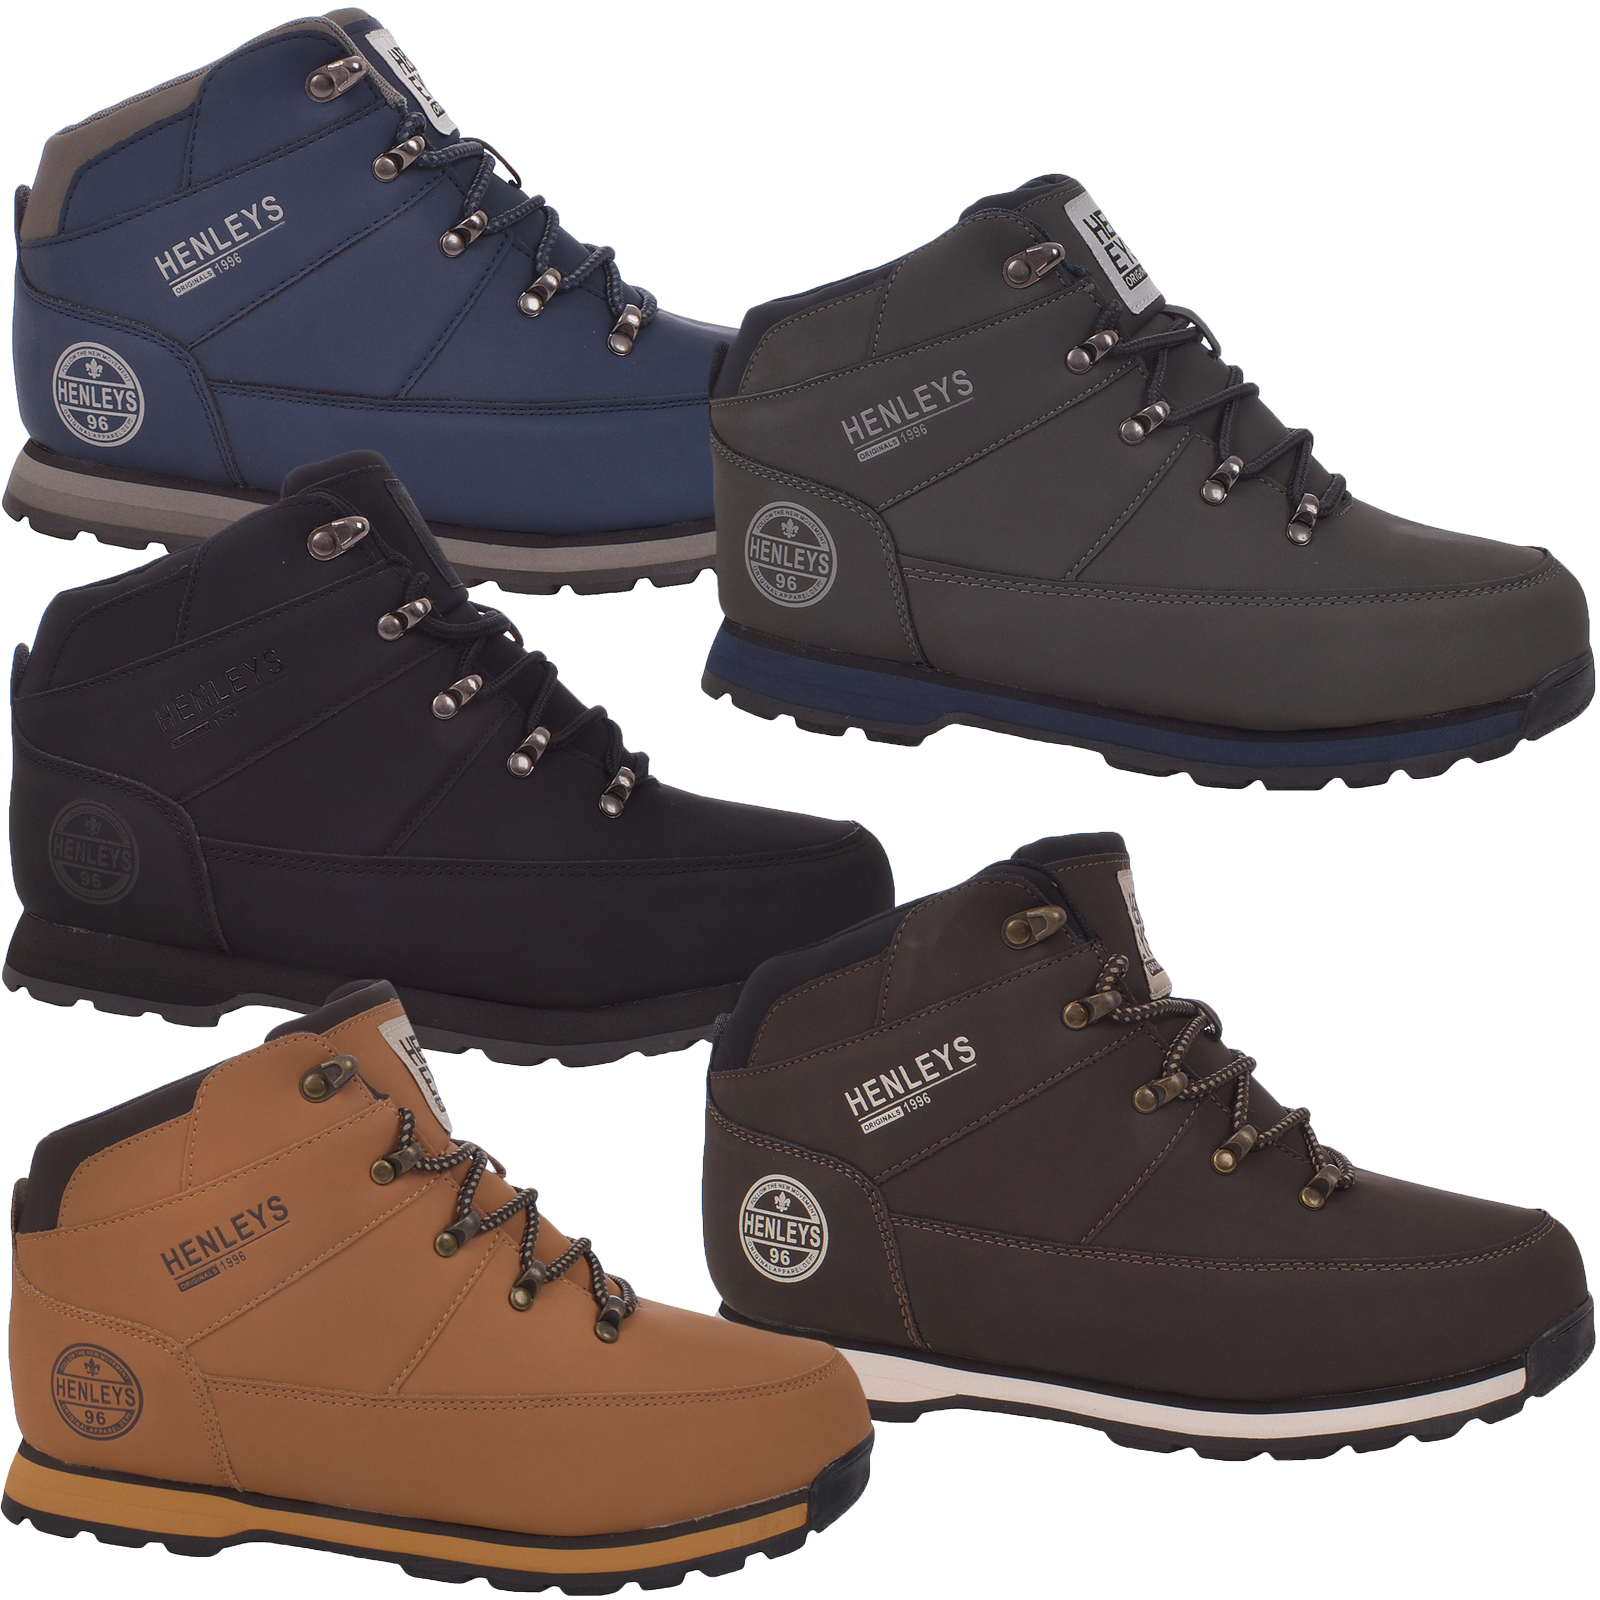 c4038356608 Details about Henleys Mens Oakland Lace Up Casual High Top Outdoor Hiking  Walking Boots Shoes